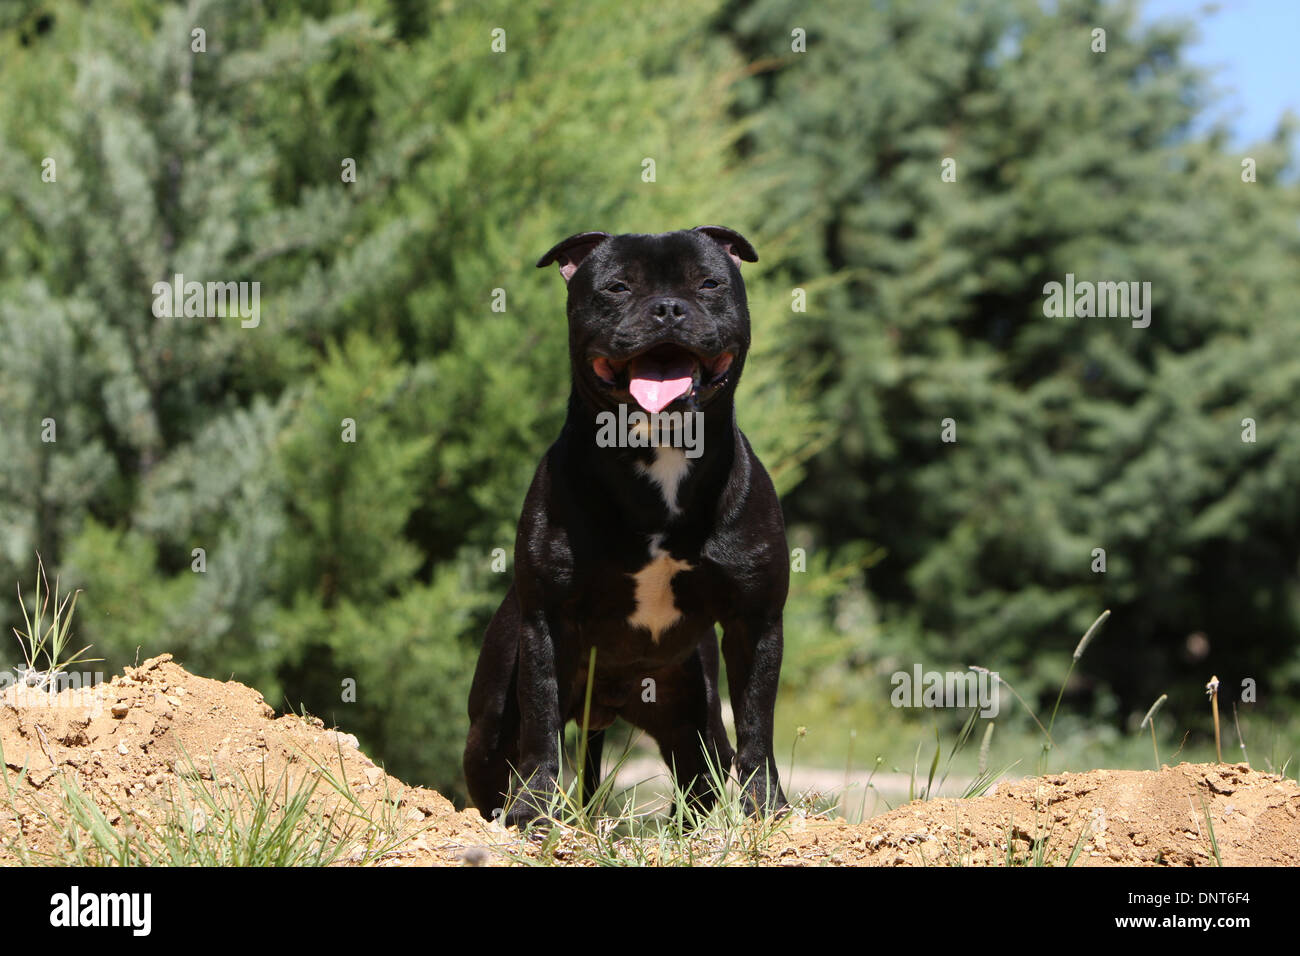 dog Staffordshire Bull Terrier / Staffie  adult standing - Stock Image